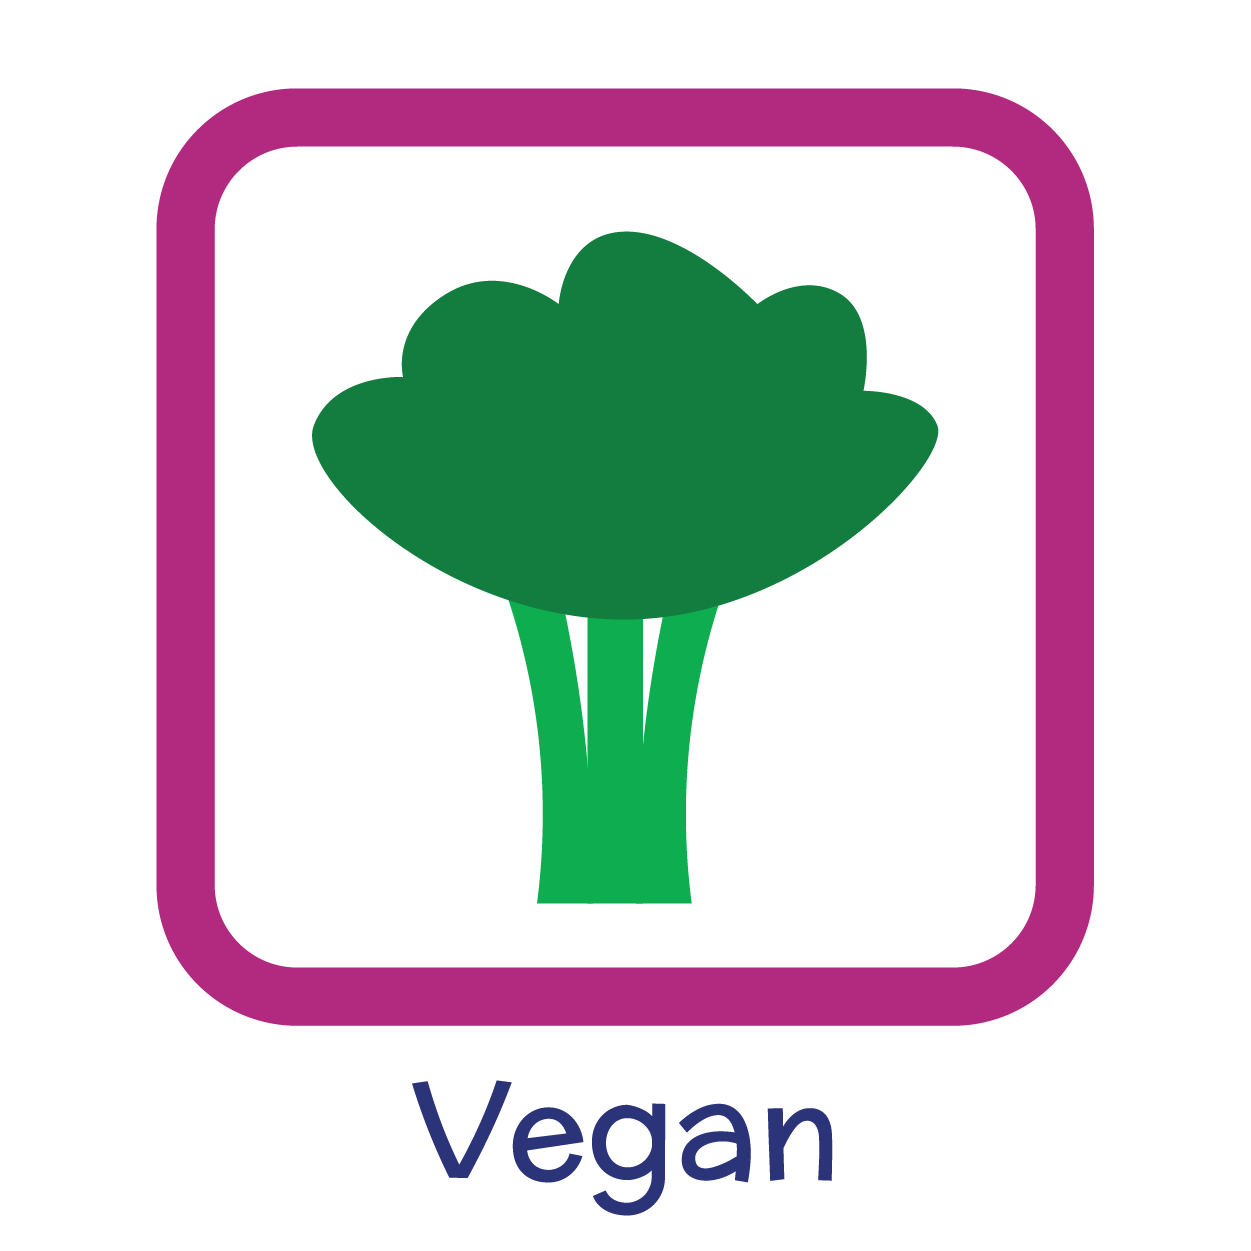 vegan-icon-nomster-chef-11.png